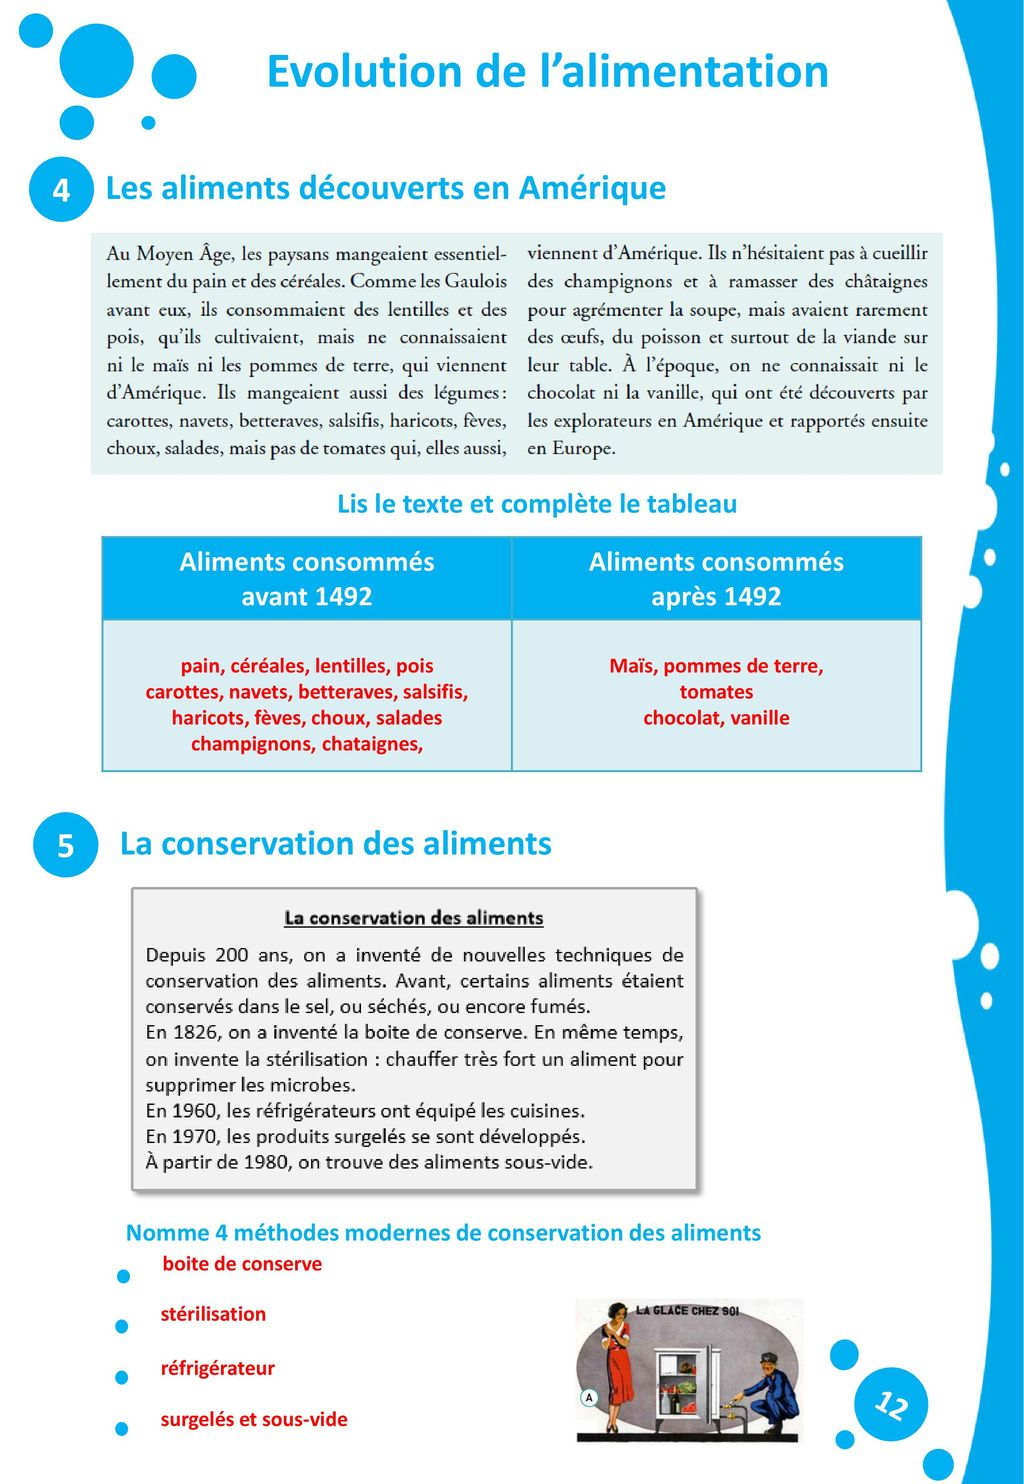 Evolution de l'alimentation